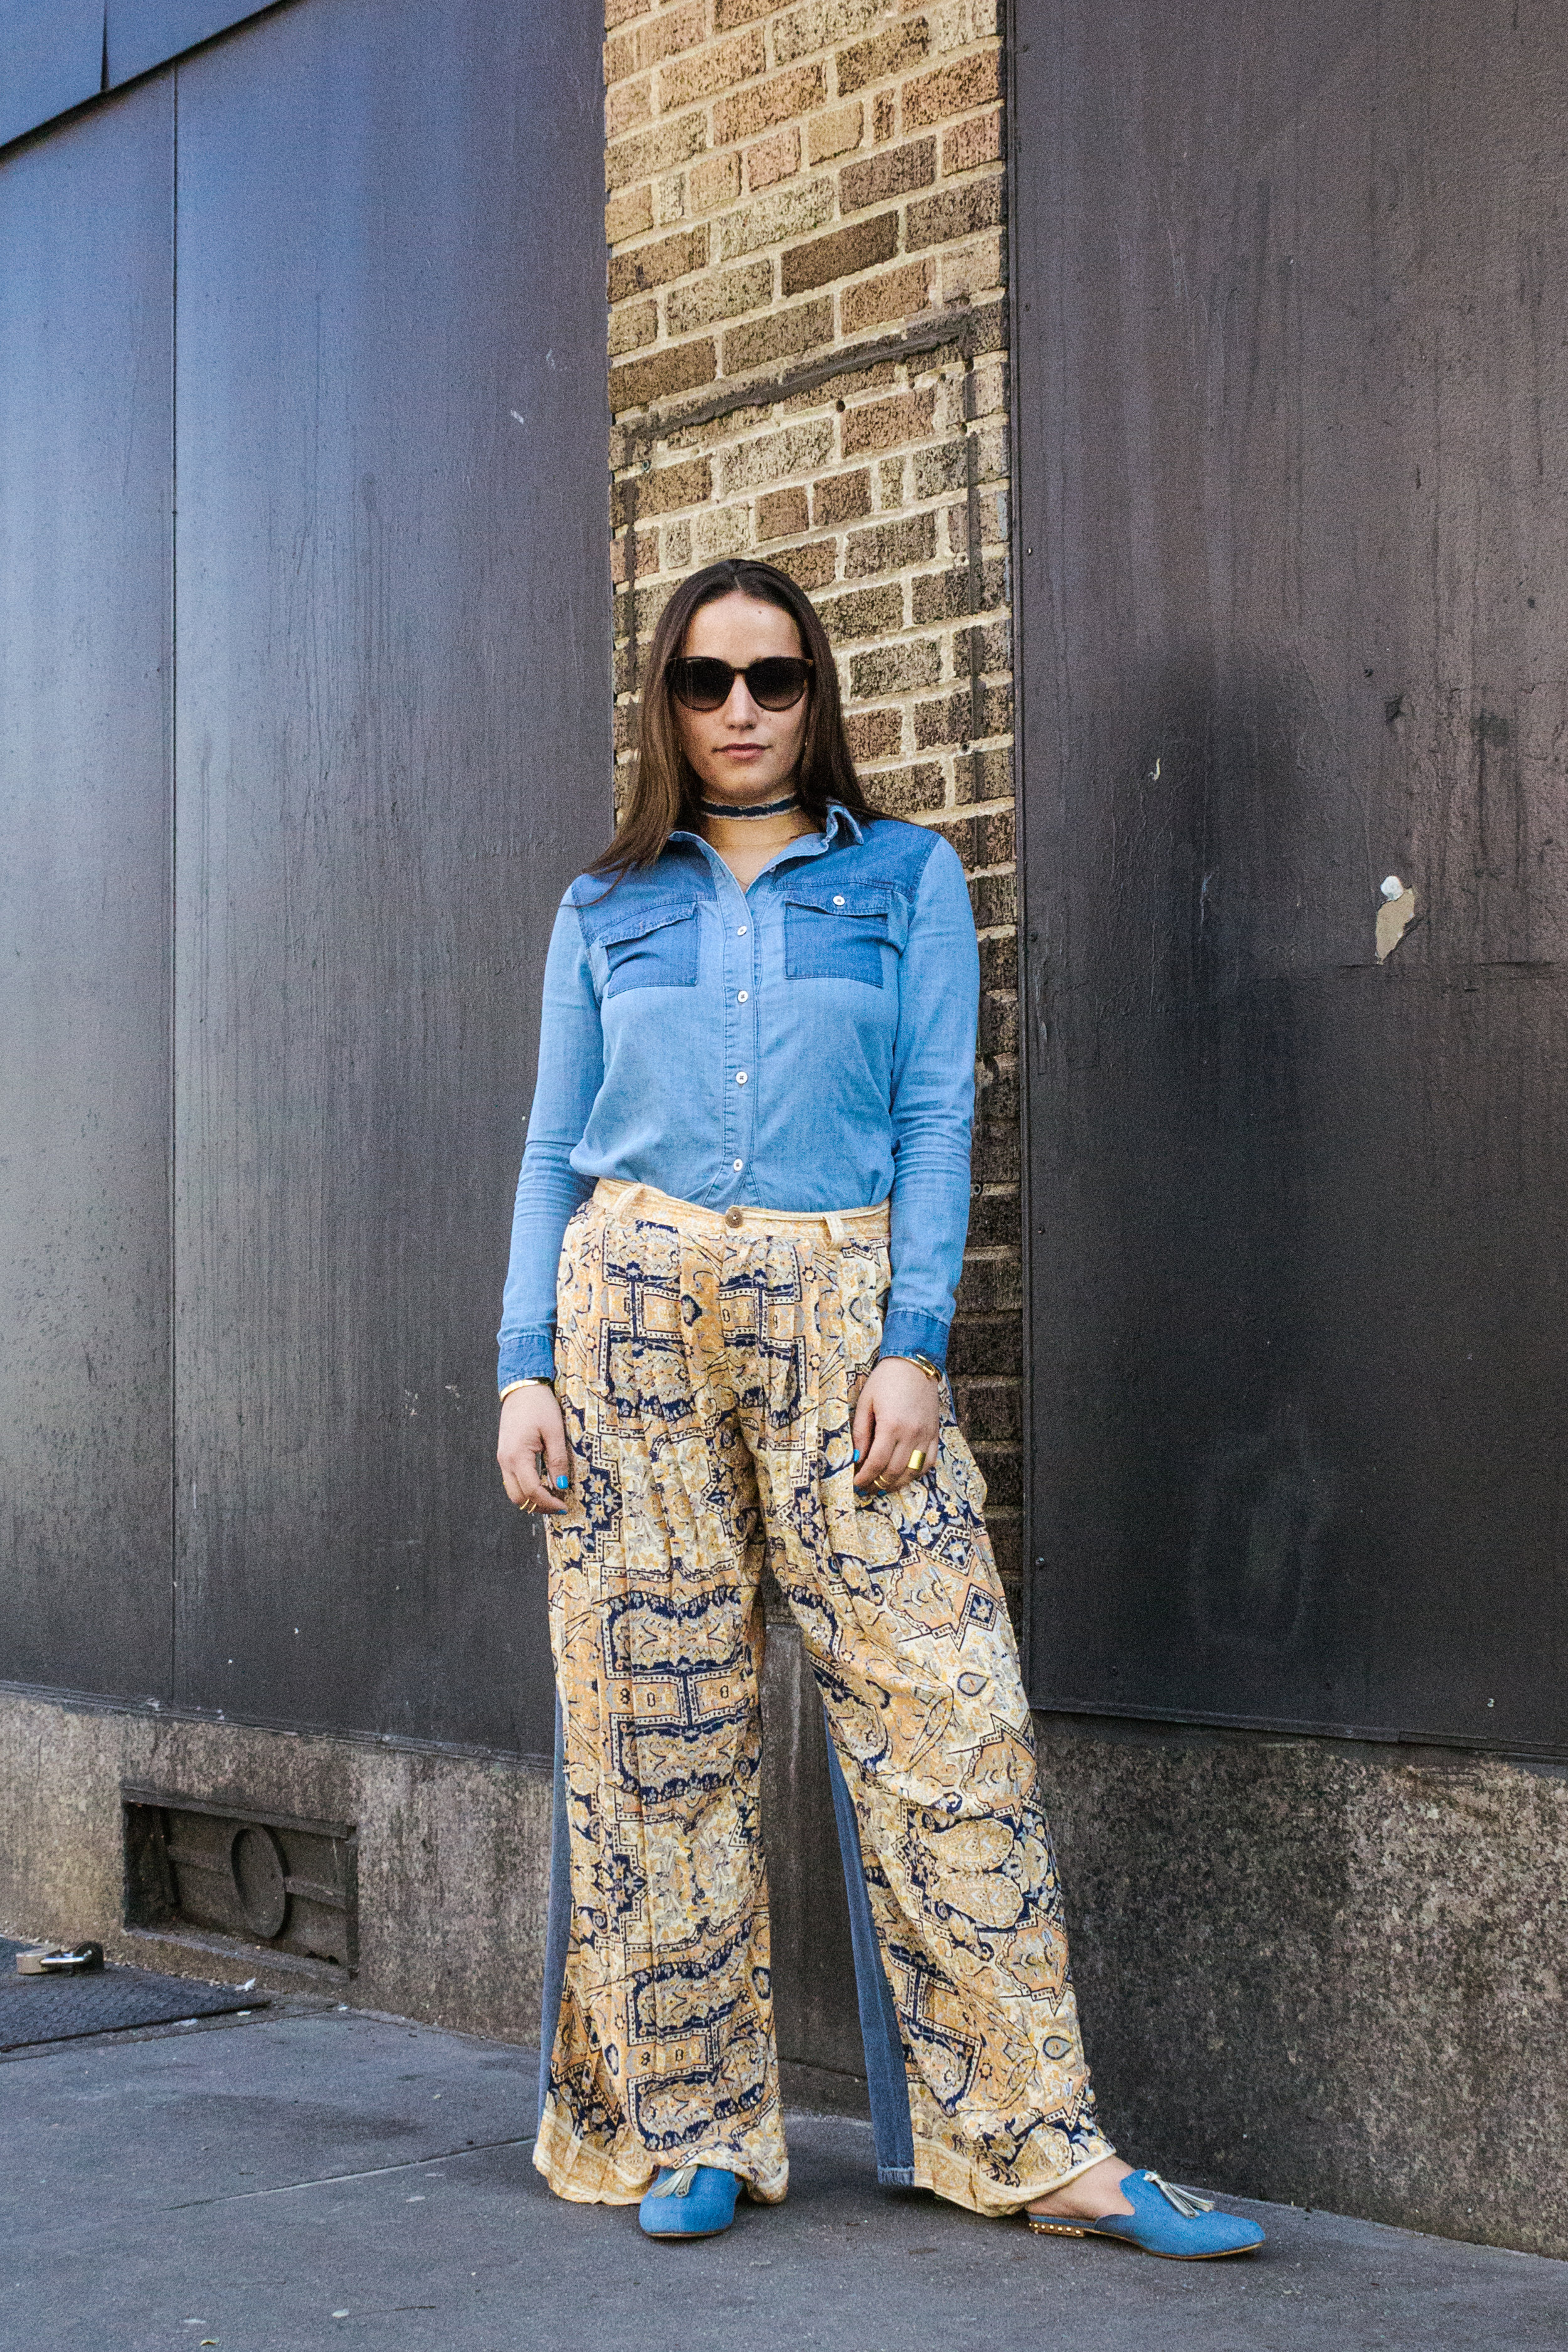 SOPHIE BICKLEY SISTER YIN 2MY YANG FASHION BLOGGERS NYC FREE PEOPLE DANCE PARTY PANTS POST 11.jpg